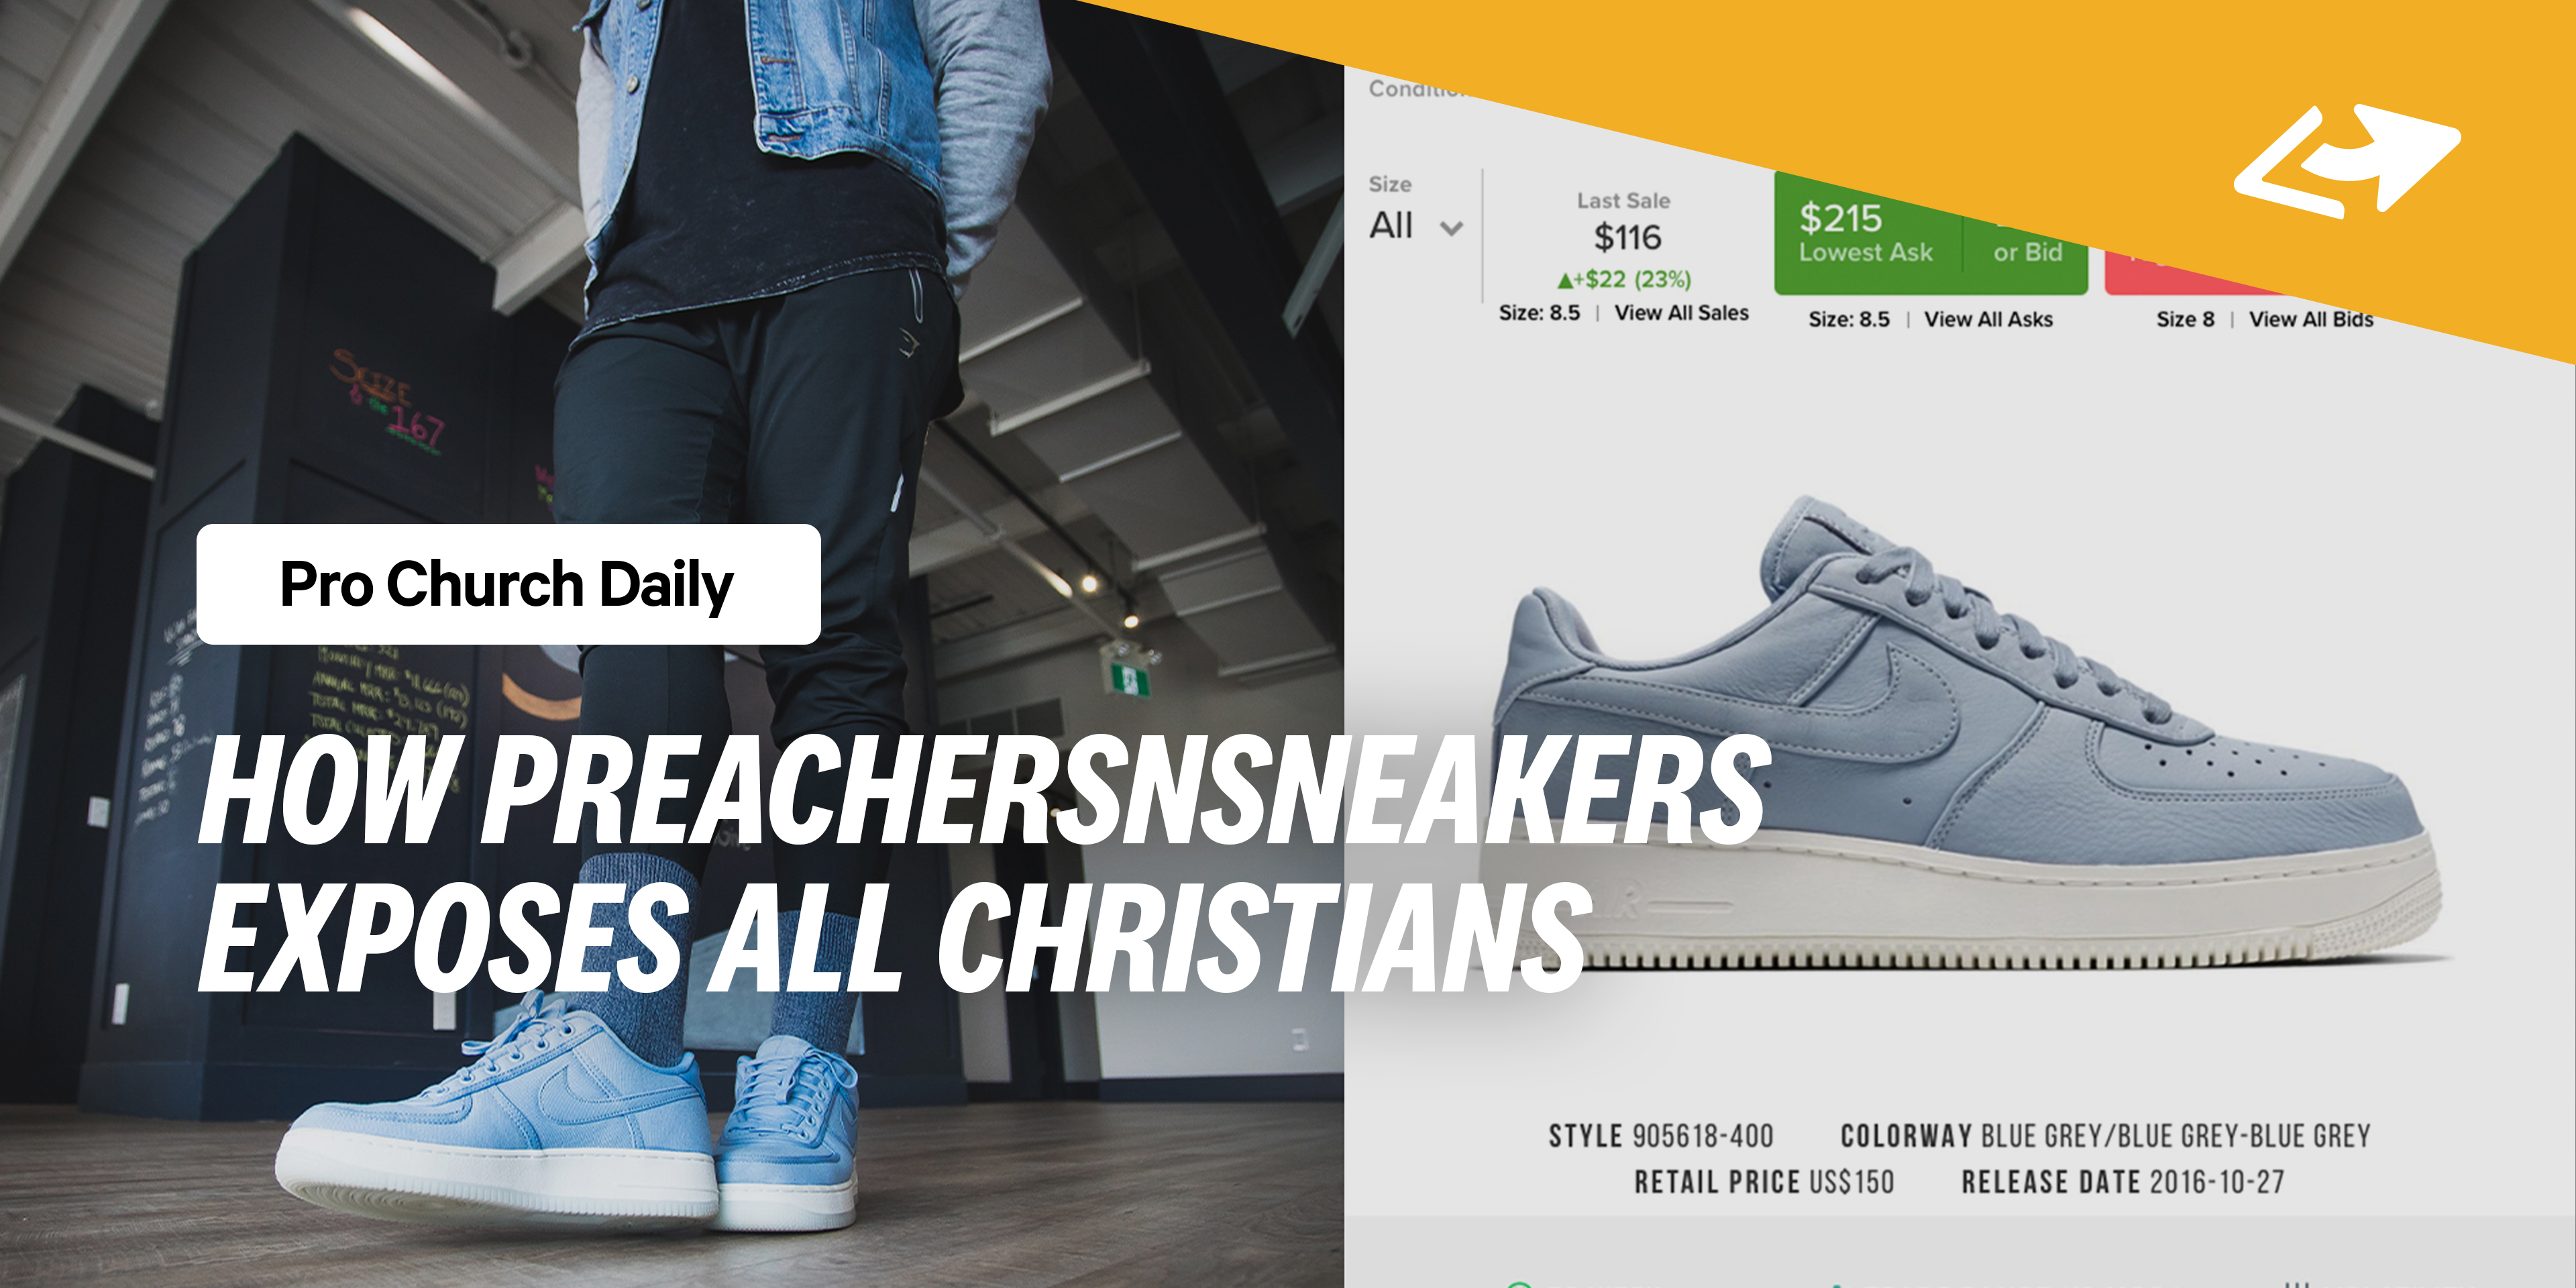 3c190c9e1d4db How PreachersNSneakers Exposes All Christians. A viral Instagram account ...